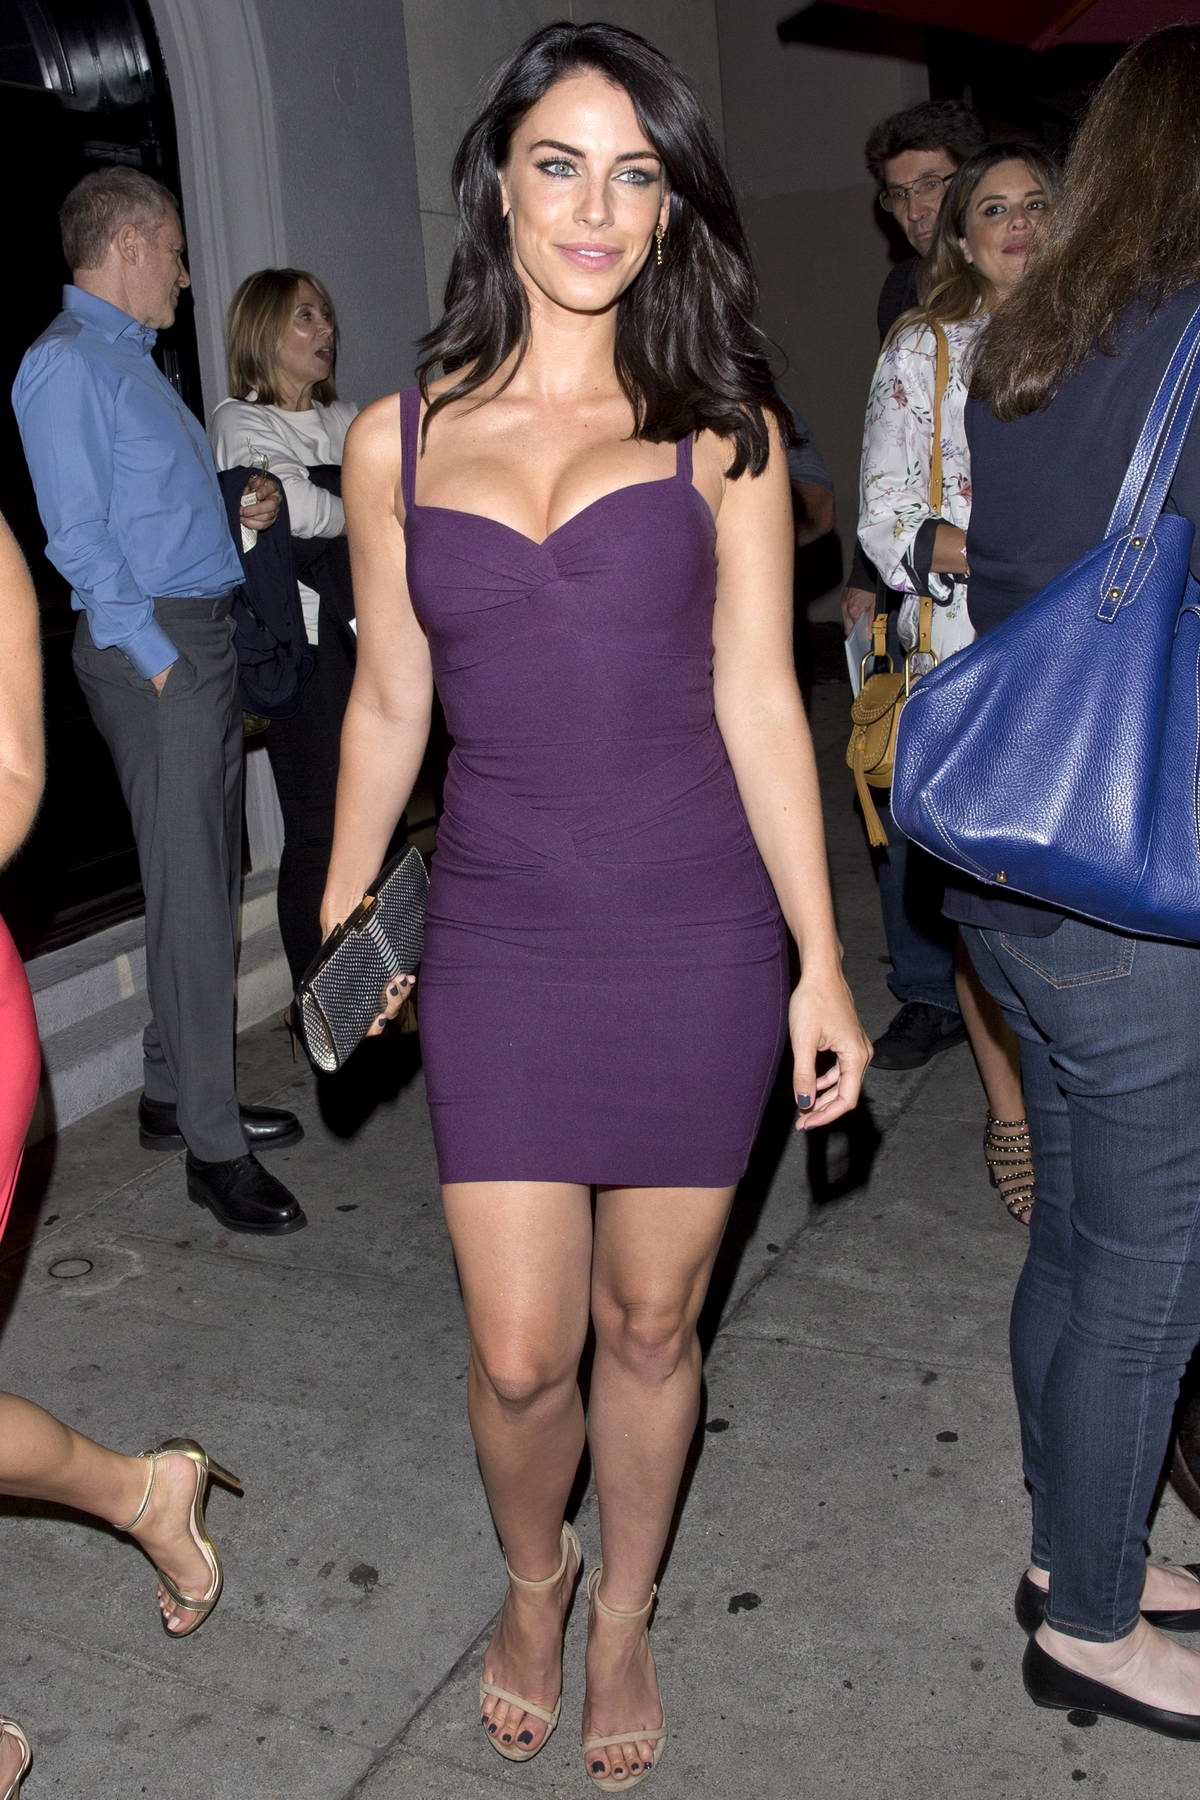 Jessica Lowndes seen wearing a formfitting purple minidress as she leaves Craig's Restaurant in West Hollywood, Los Angeles